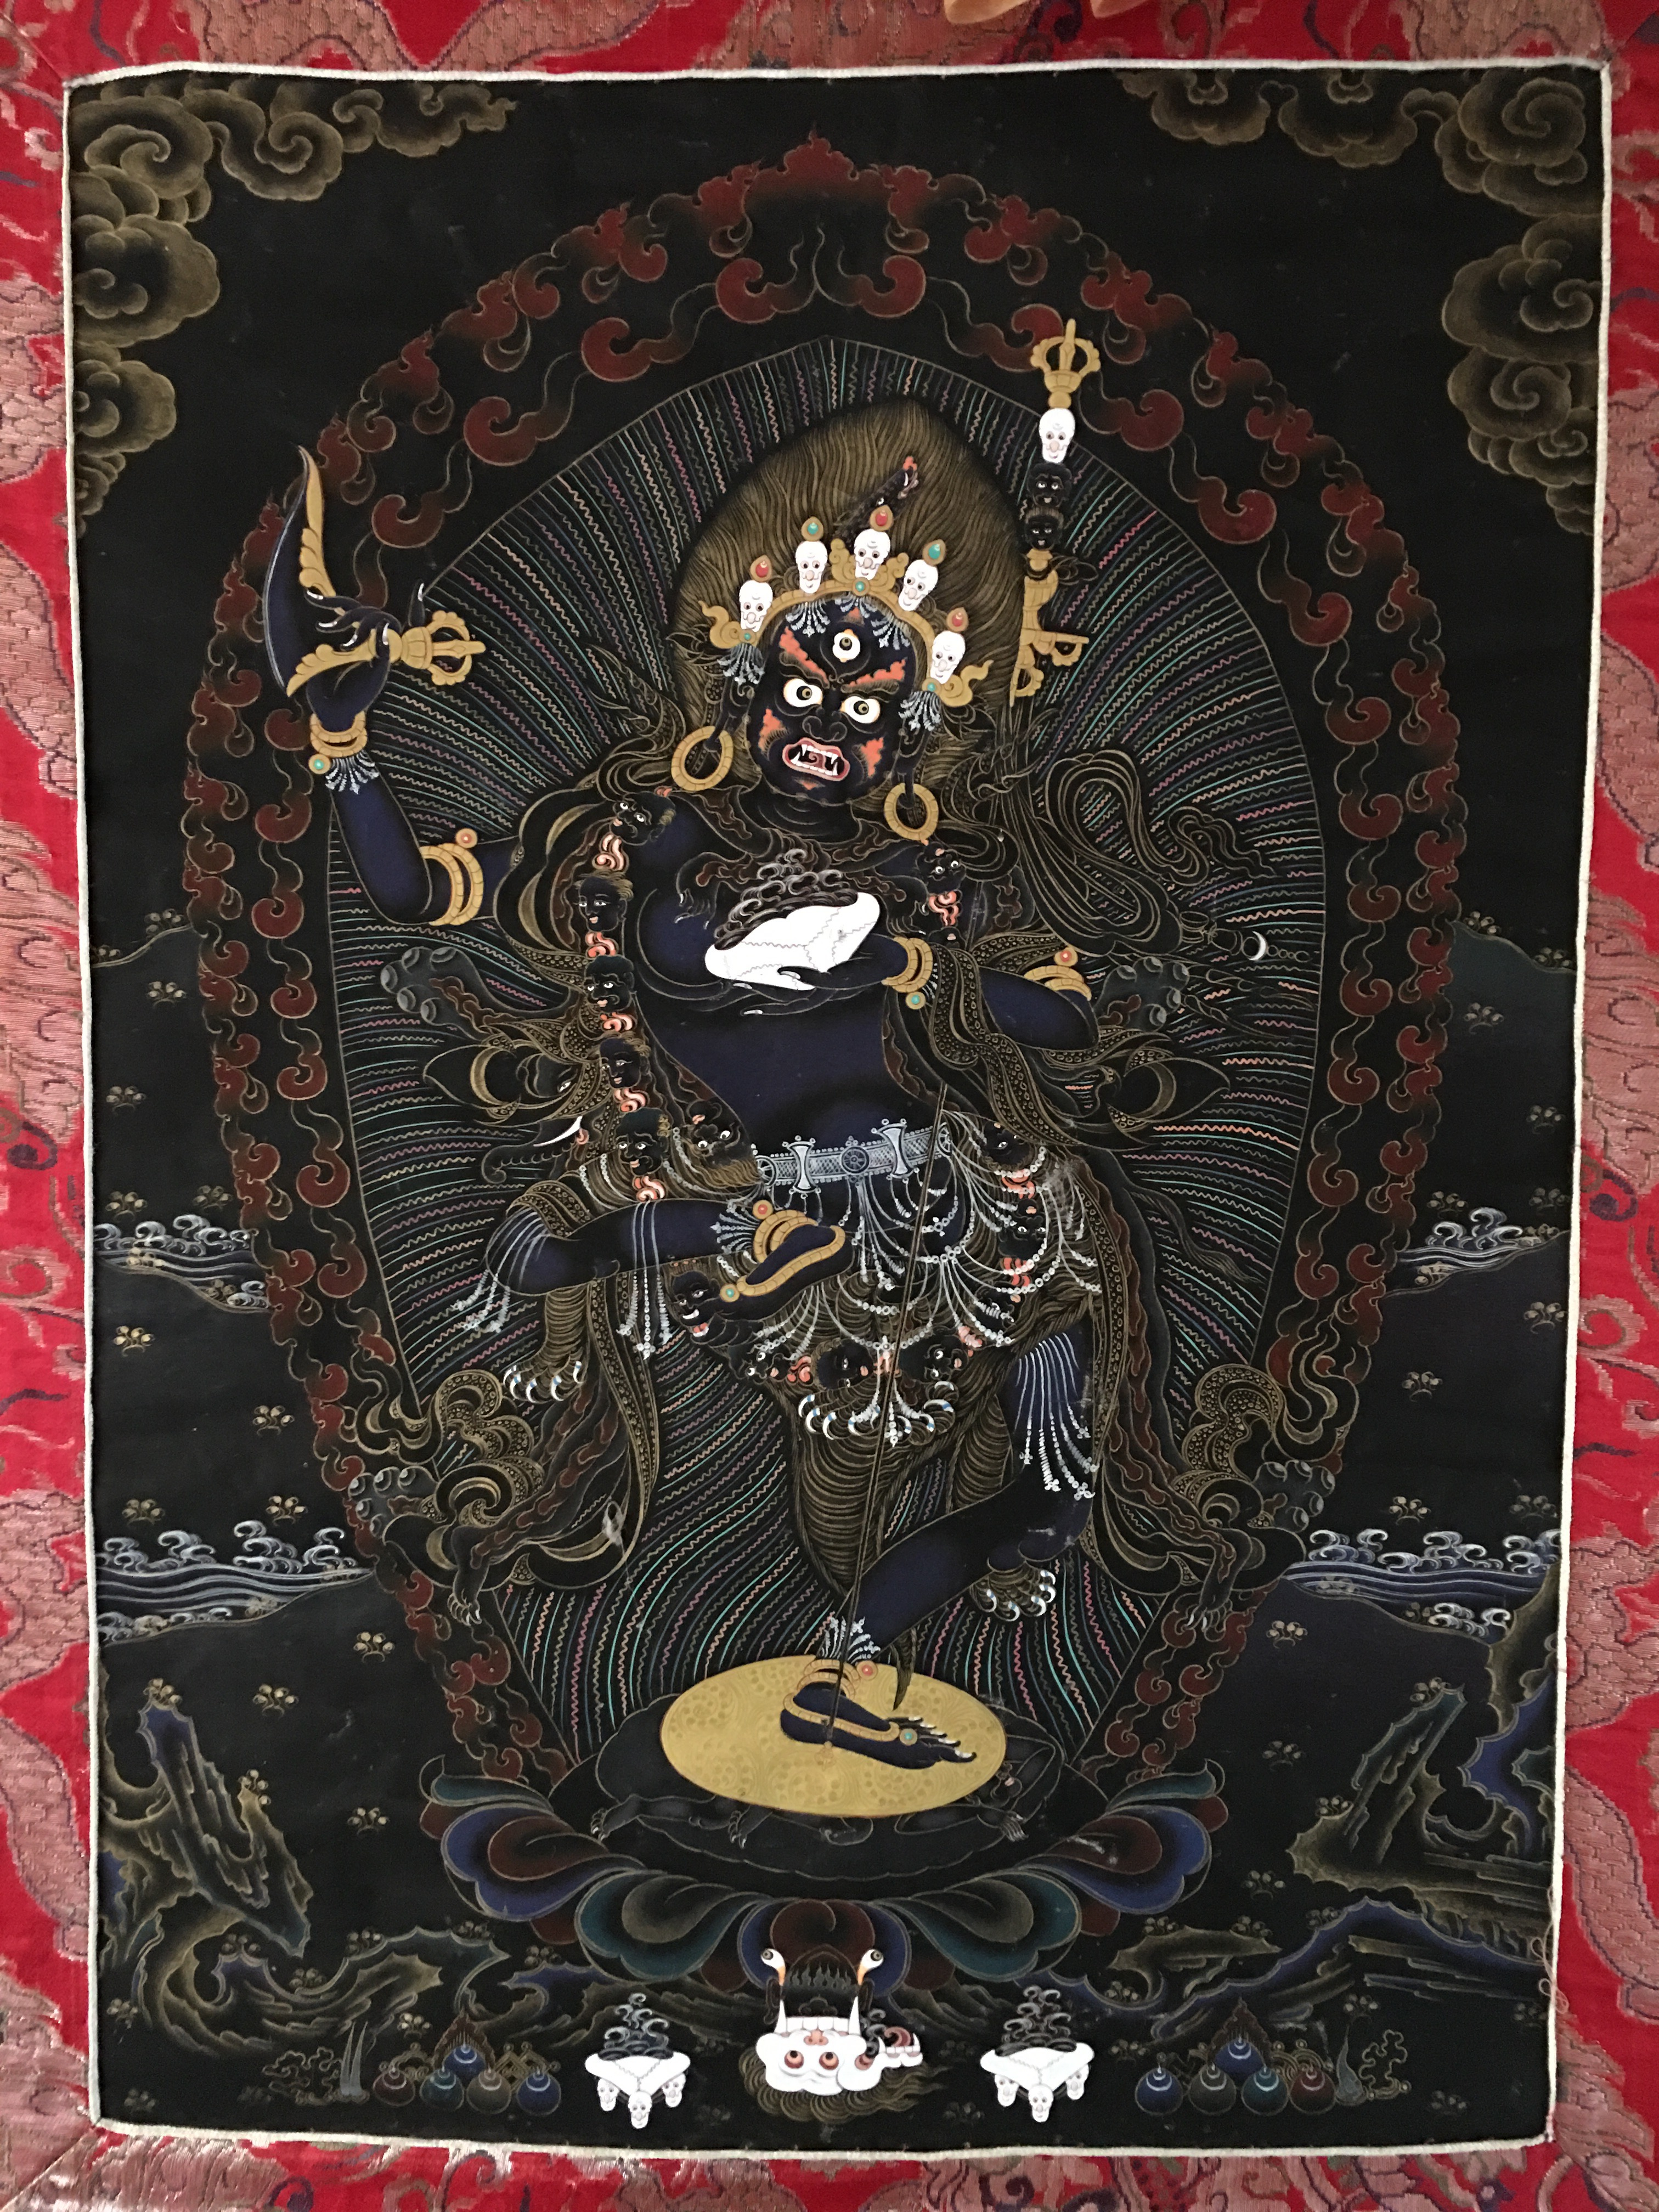 ThromaThangka2.jpg